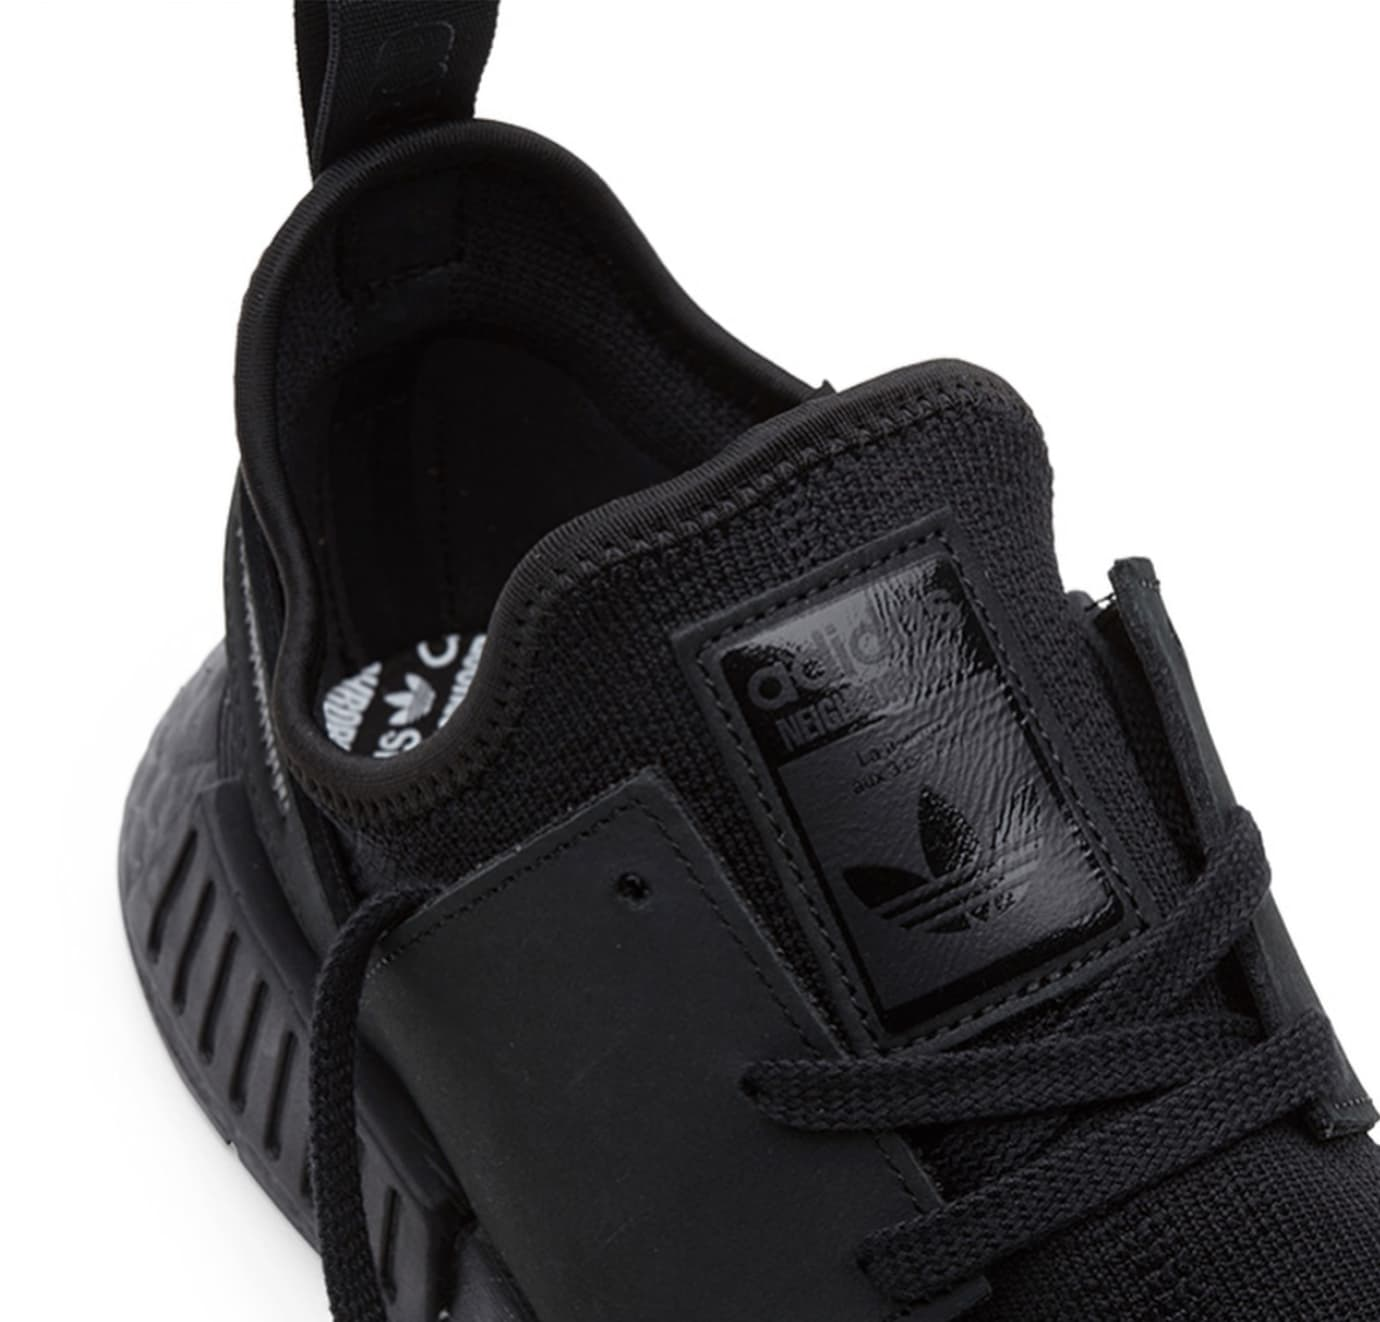 Neighborhood x Adidas NMD_R1 PK 'Triple Black' (Detail 1)